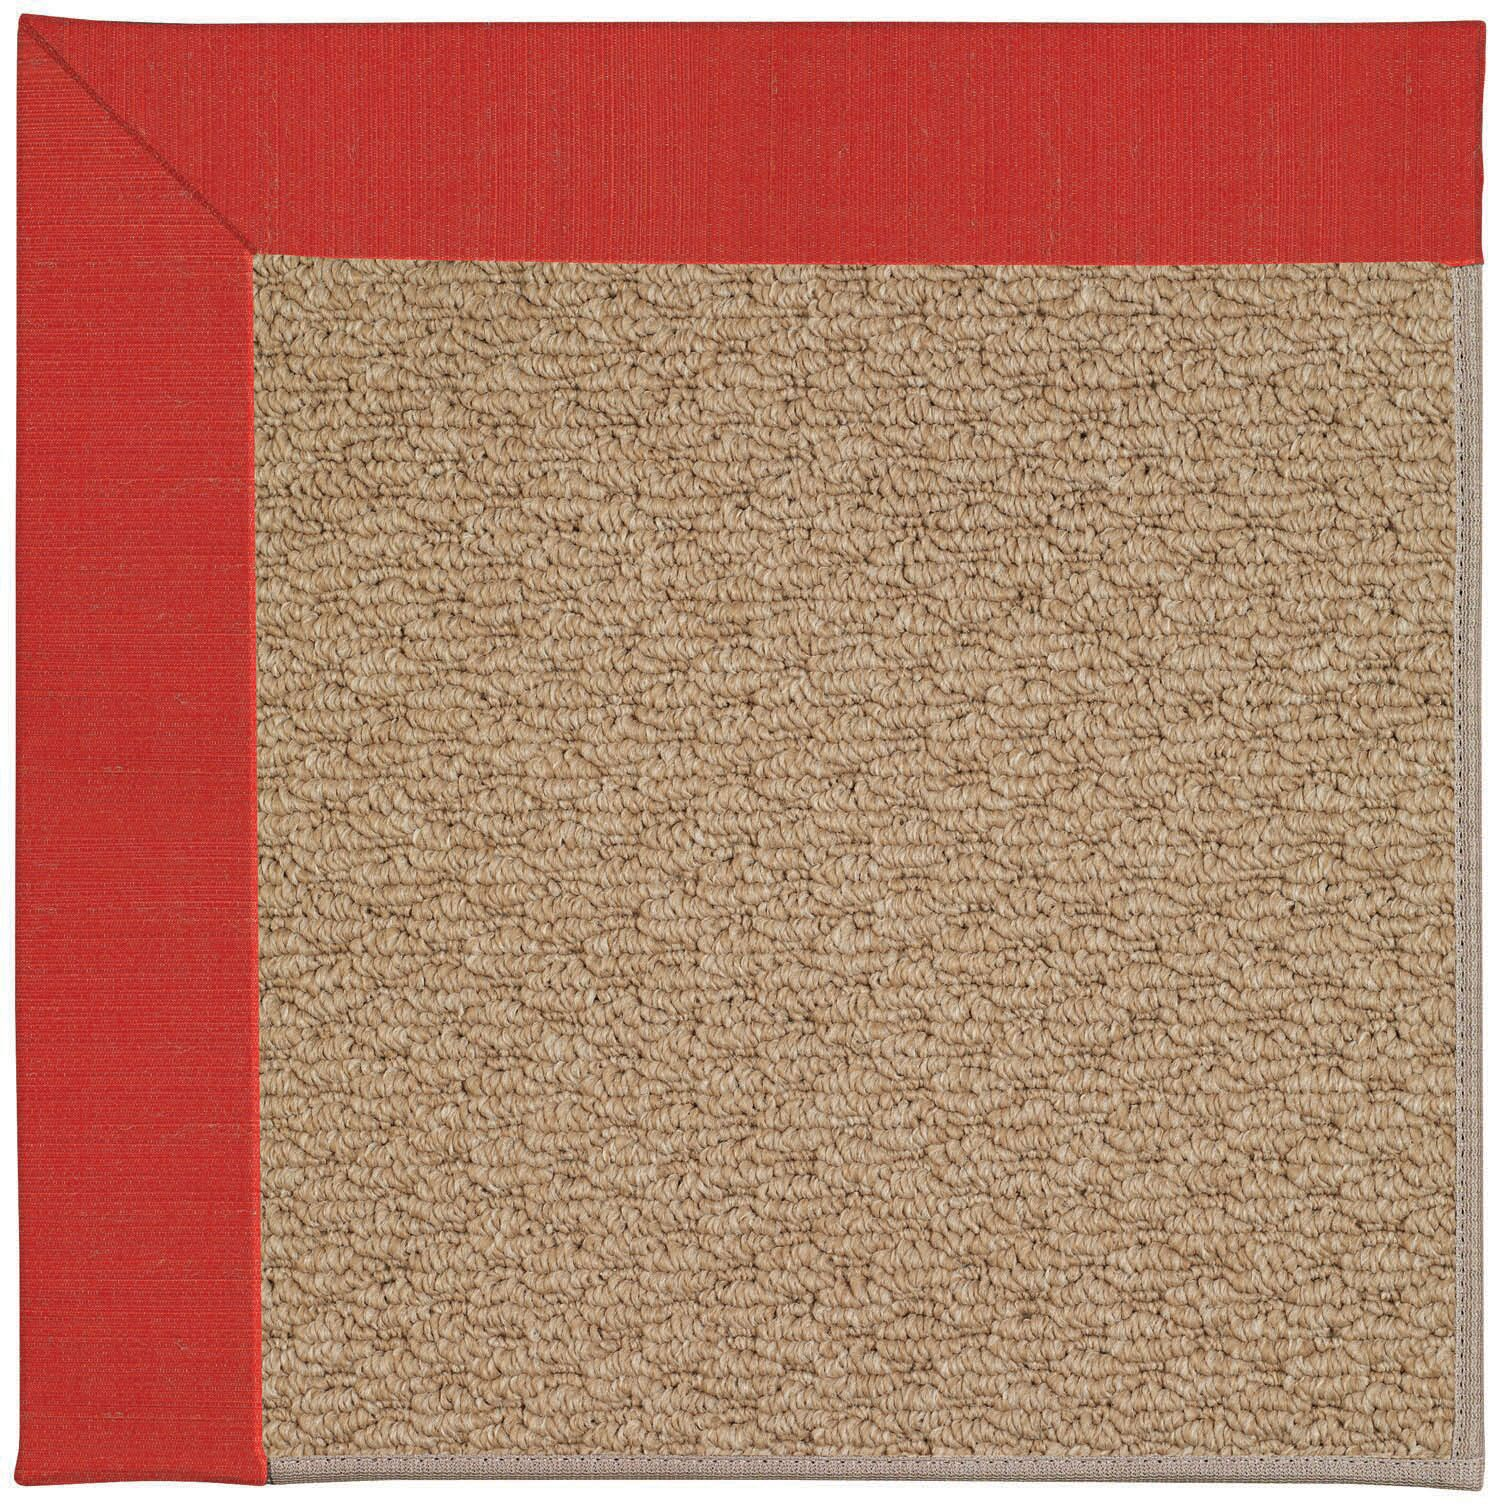 Lisle Machine Tufted Red Crimson Indoor/Outdoor Area Rug Rug Size: Rectangle 5' x 8'